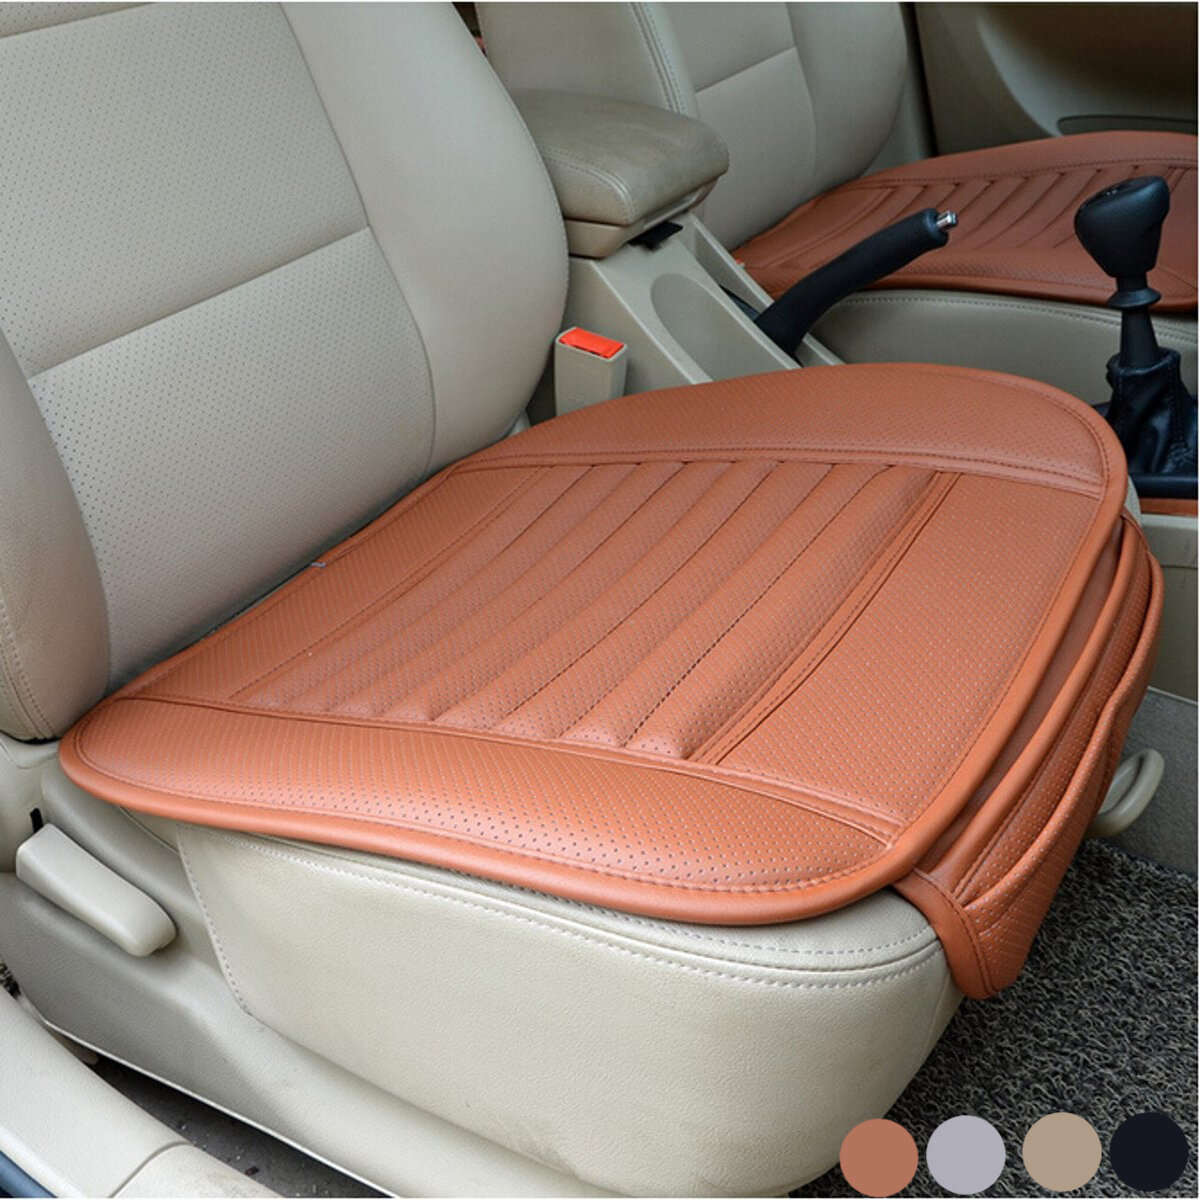 Car Seat Cushions Australia Universal Seat Pad Pu Leather Bamboo Charcoal Car Cushions Car Seat Covers For Auto Car Chairs Interior